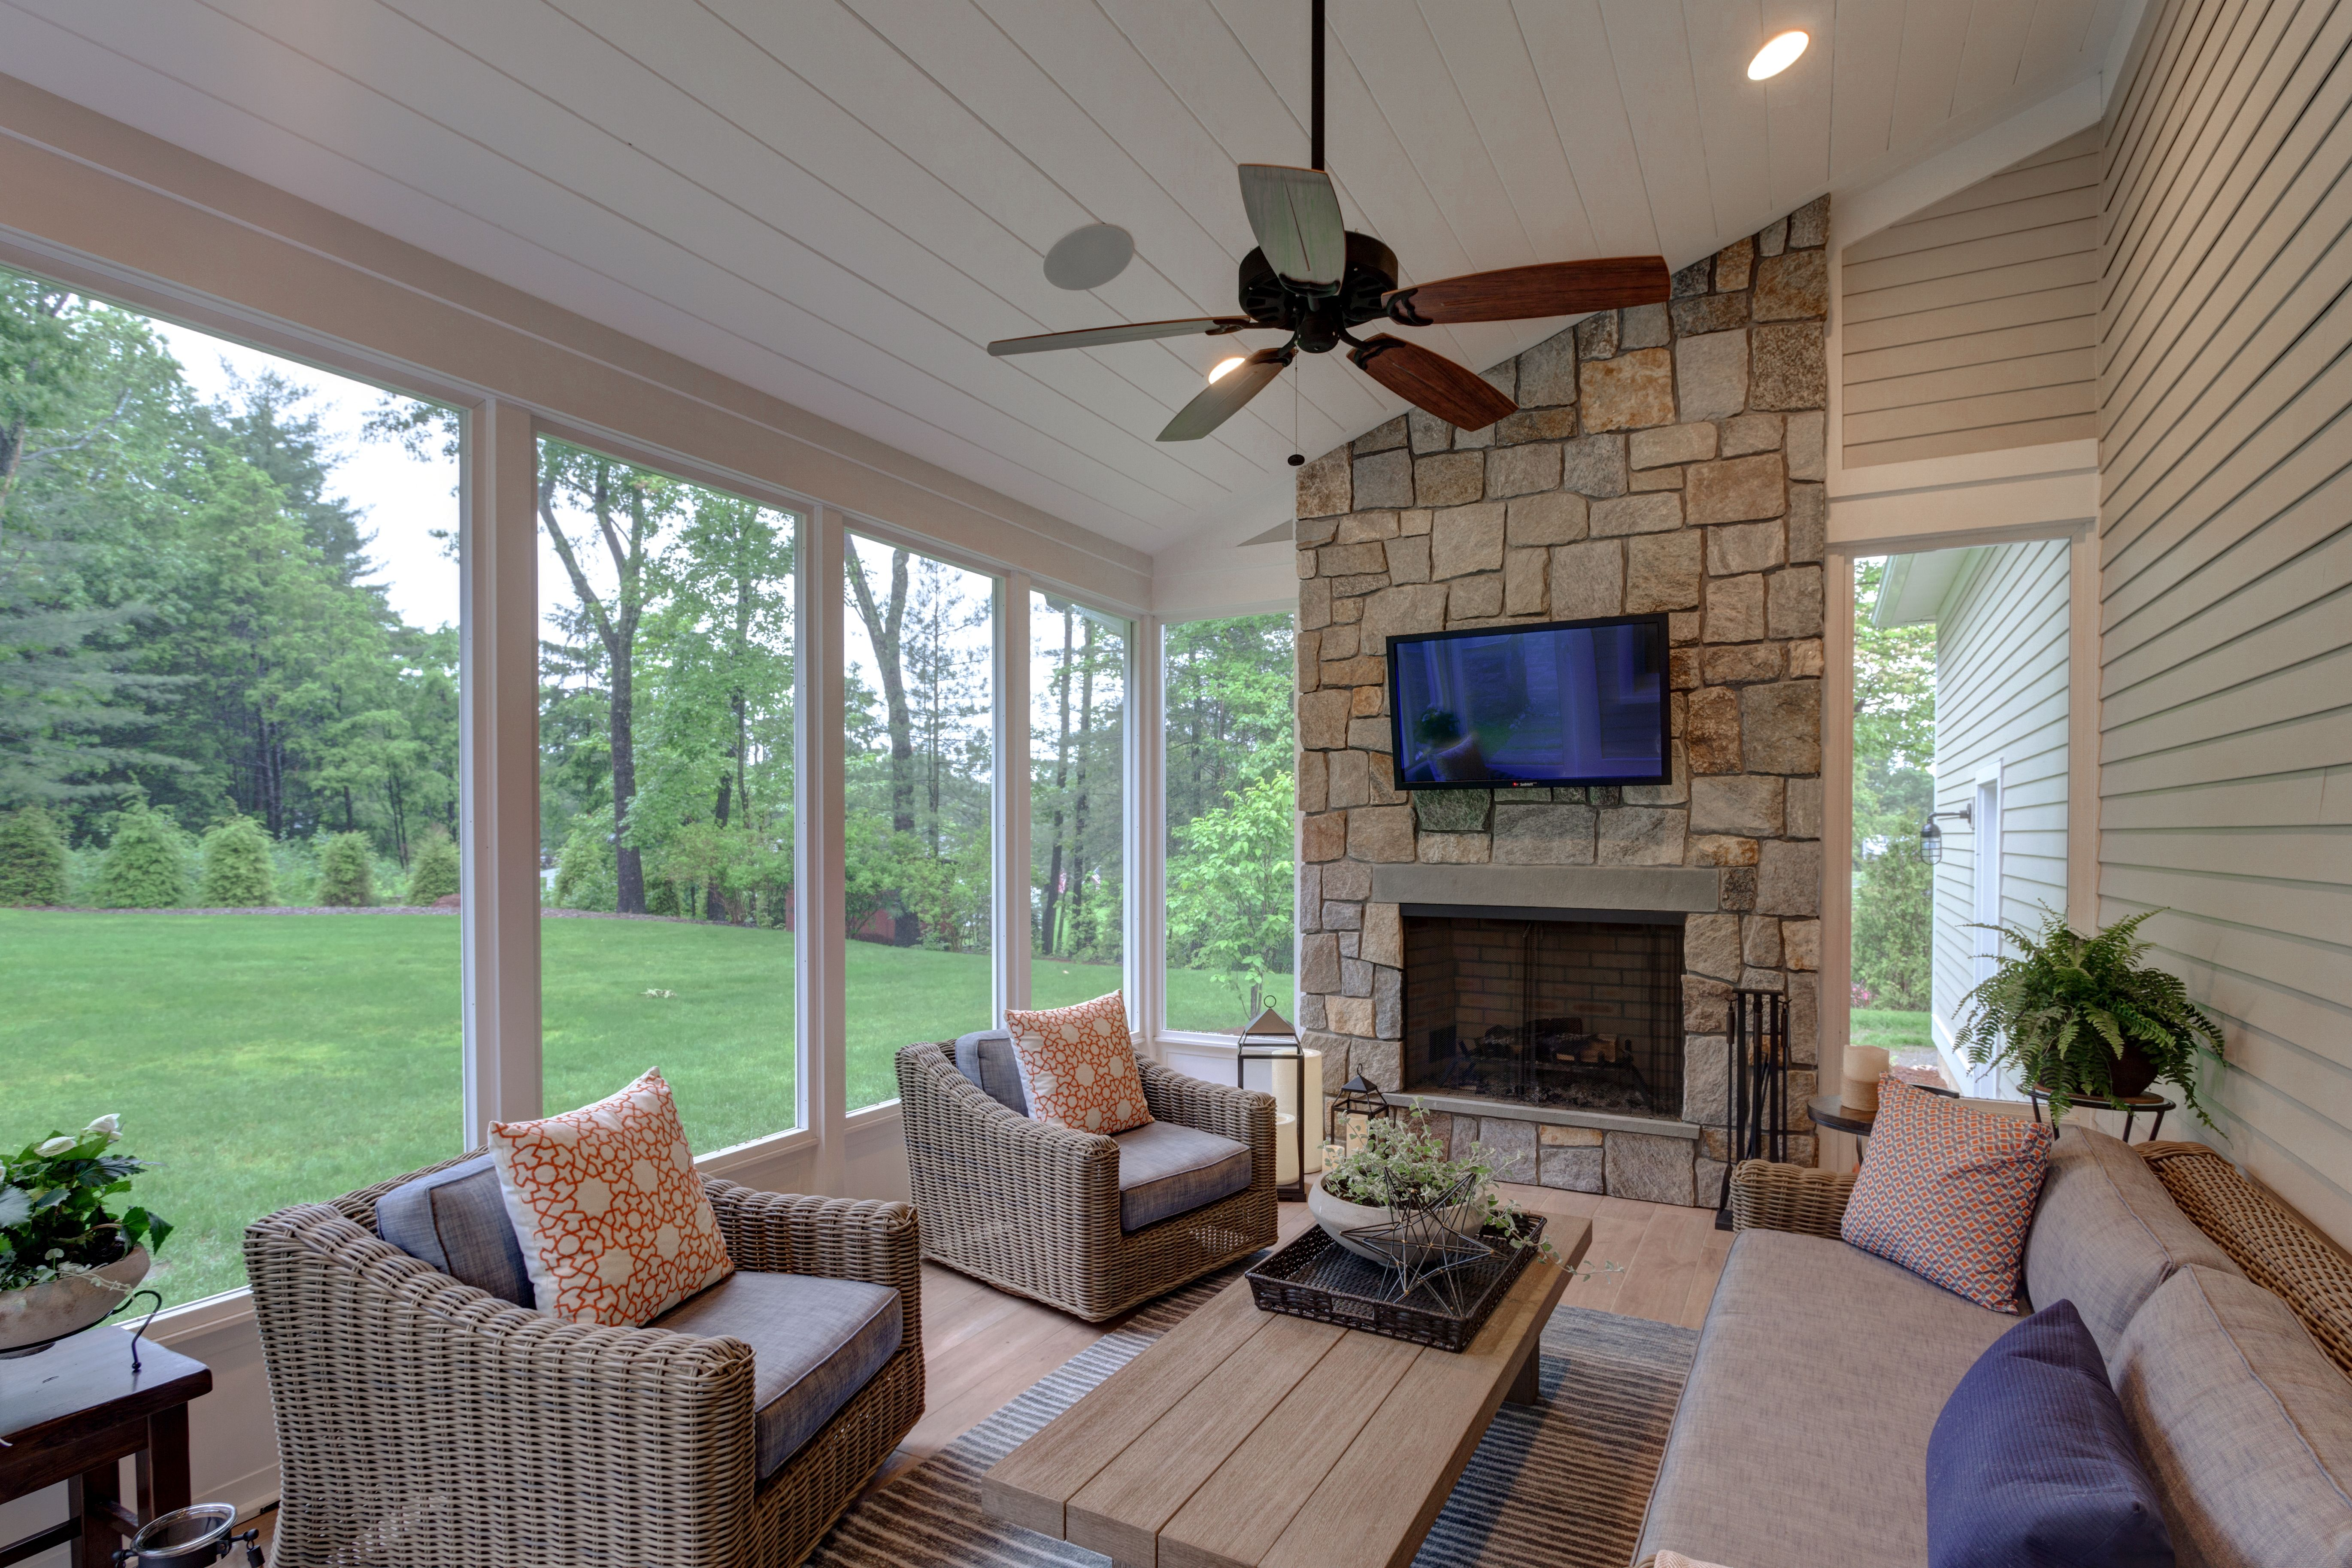 Home in 2020 | Porch fireplace, Indoor outdoor furniture ... on Fine Living Patio Set id=67806